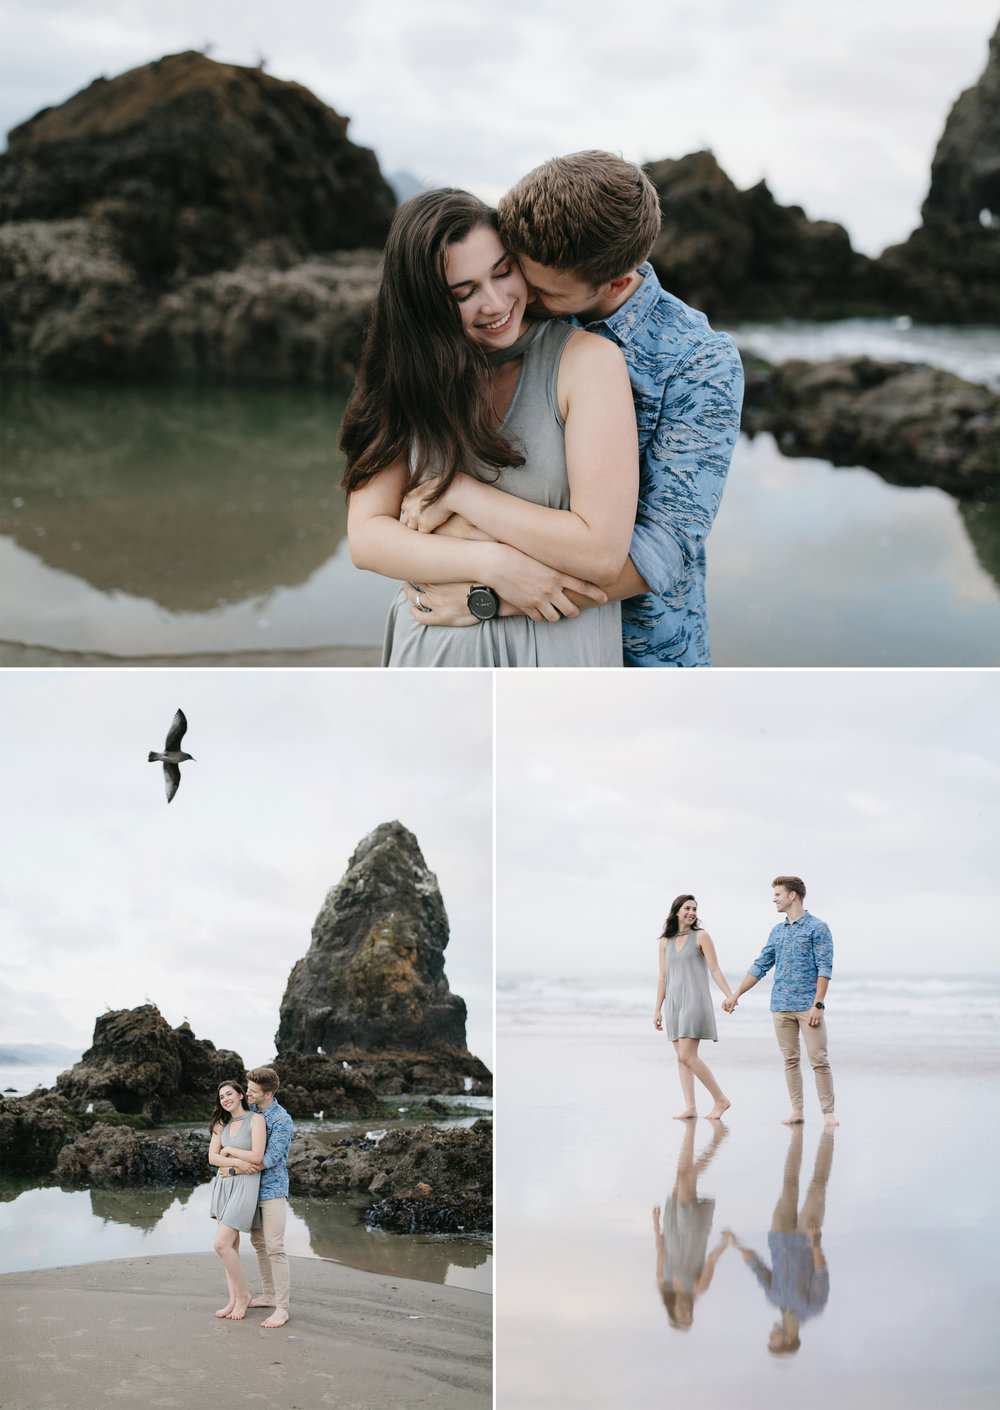 Cannon-Beach-Adventure-Engagement-Photography-Oregon-Destination-Elopement-Photographer-00.jpg